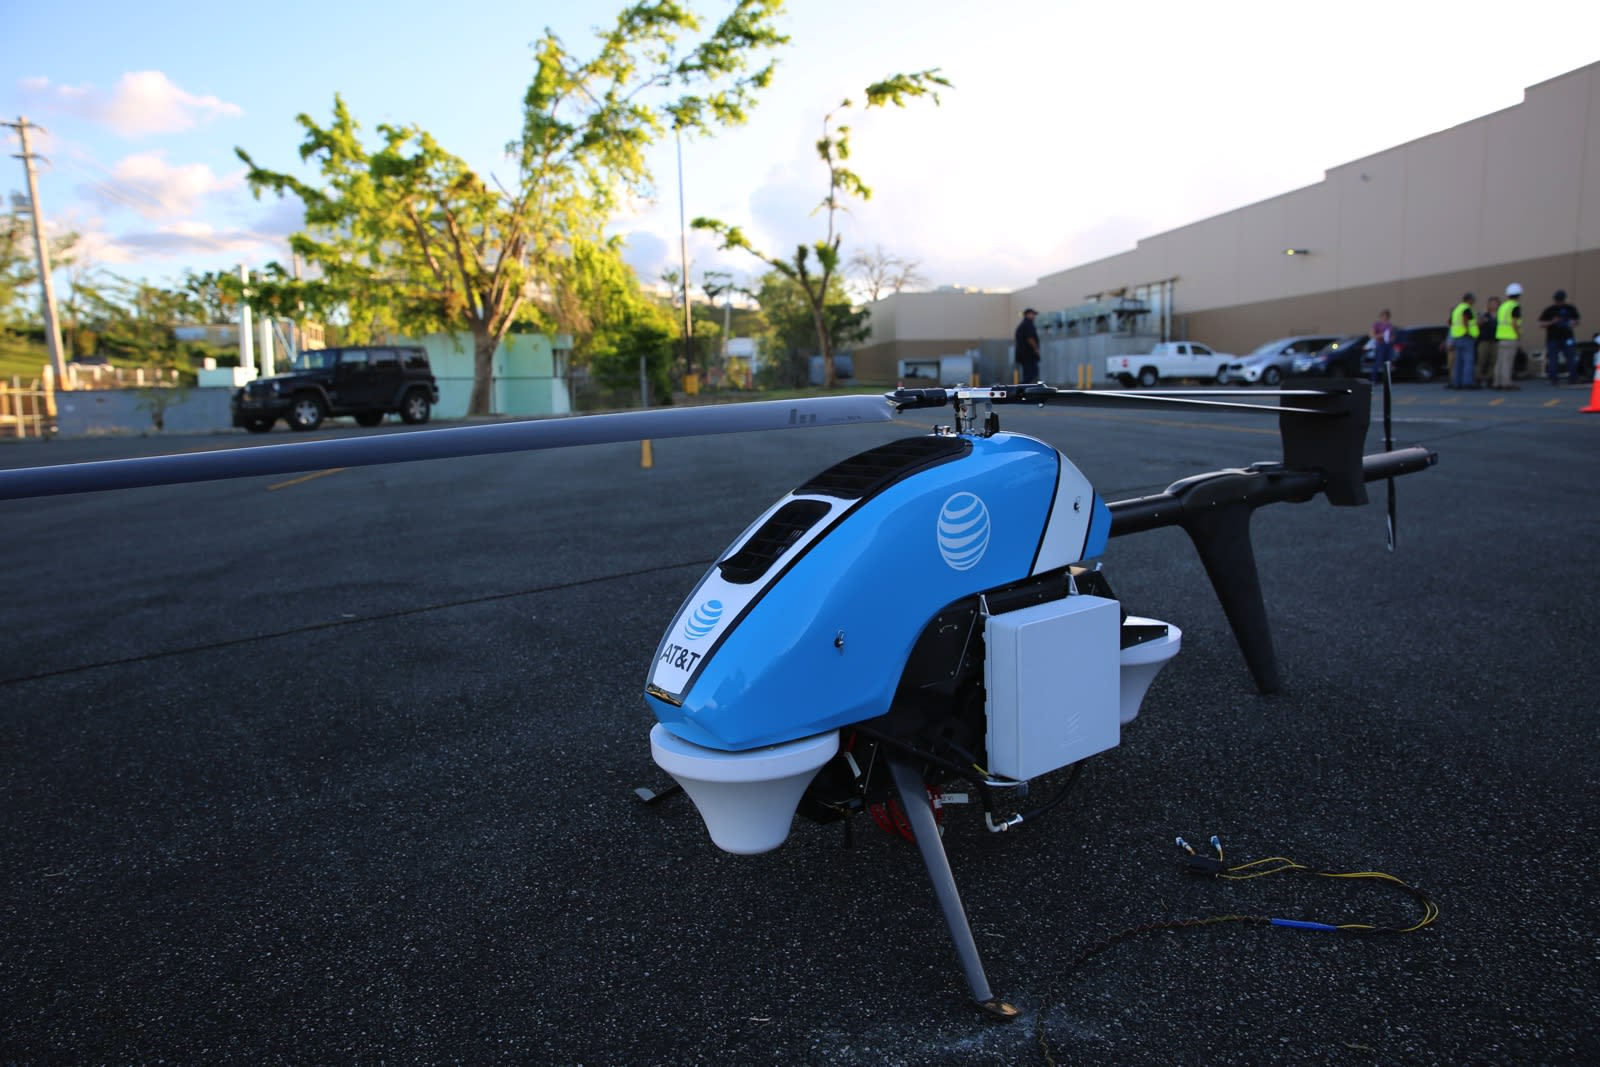 Atts Flying Cow Drone Provides Cell Service To Puerto Rico